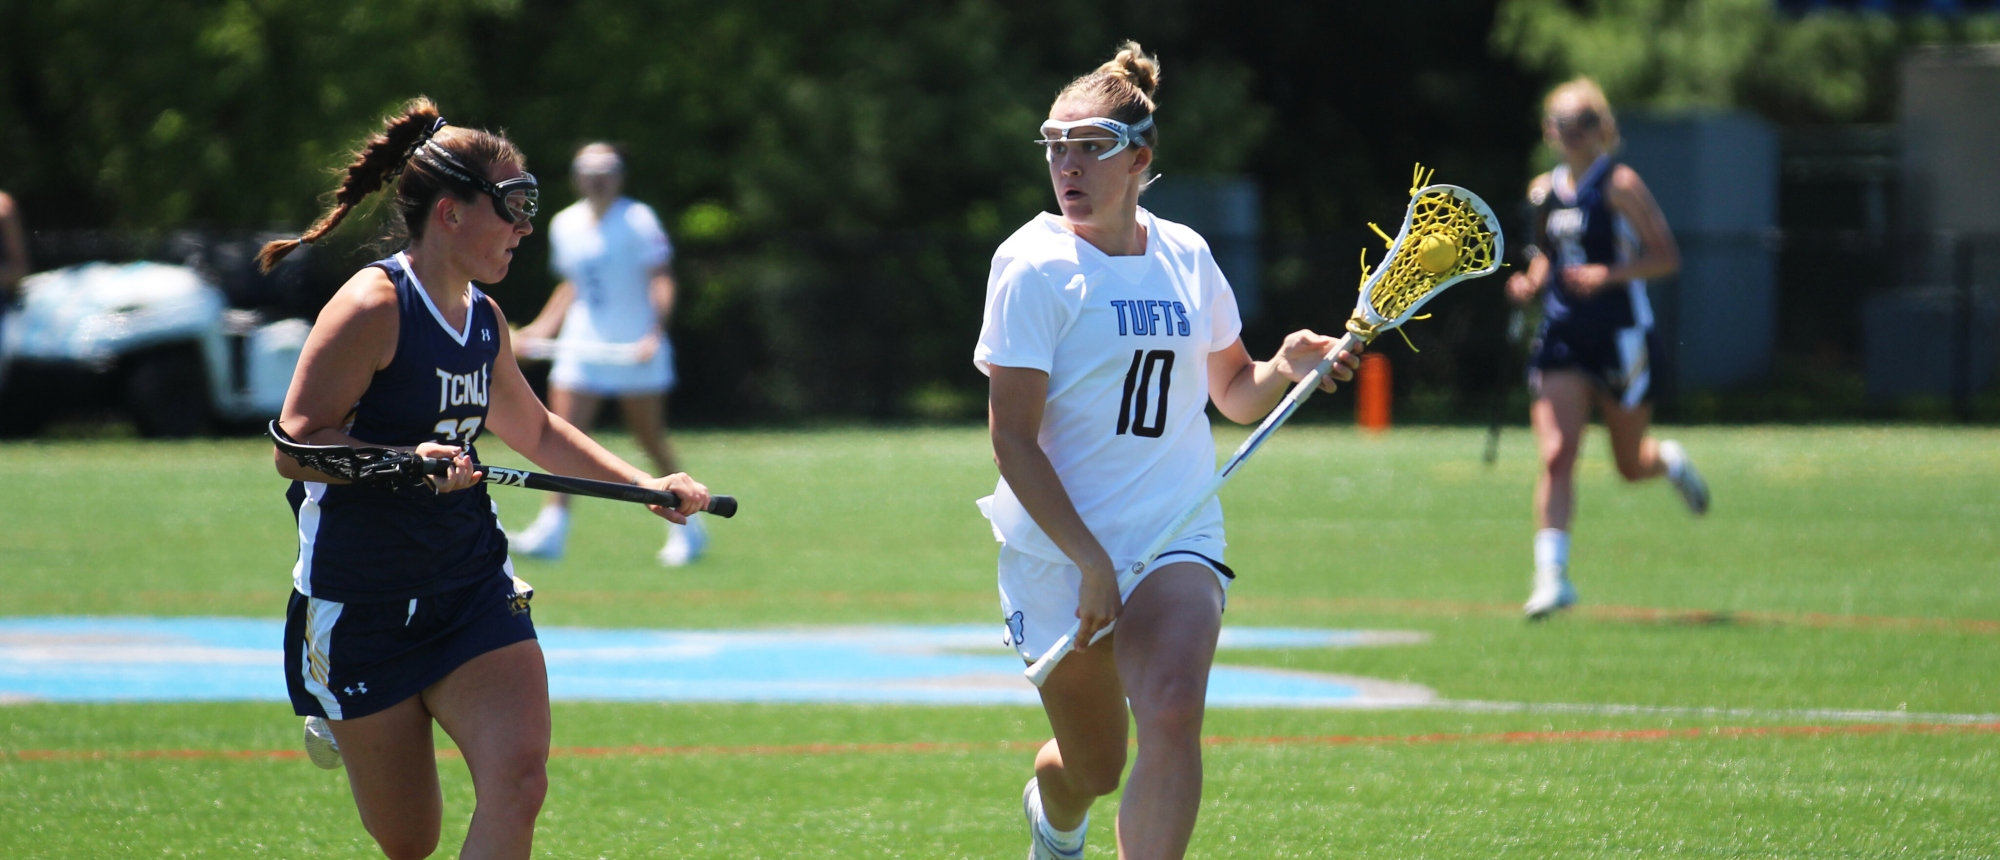 Women's Lacrosse Stays Step Ahead Of Colby For 18-12 NESCAC Win